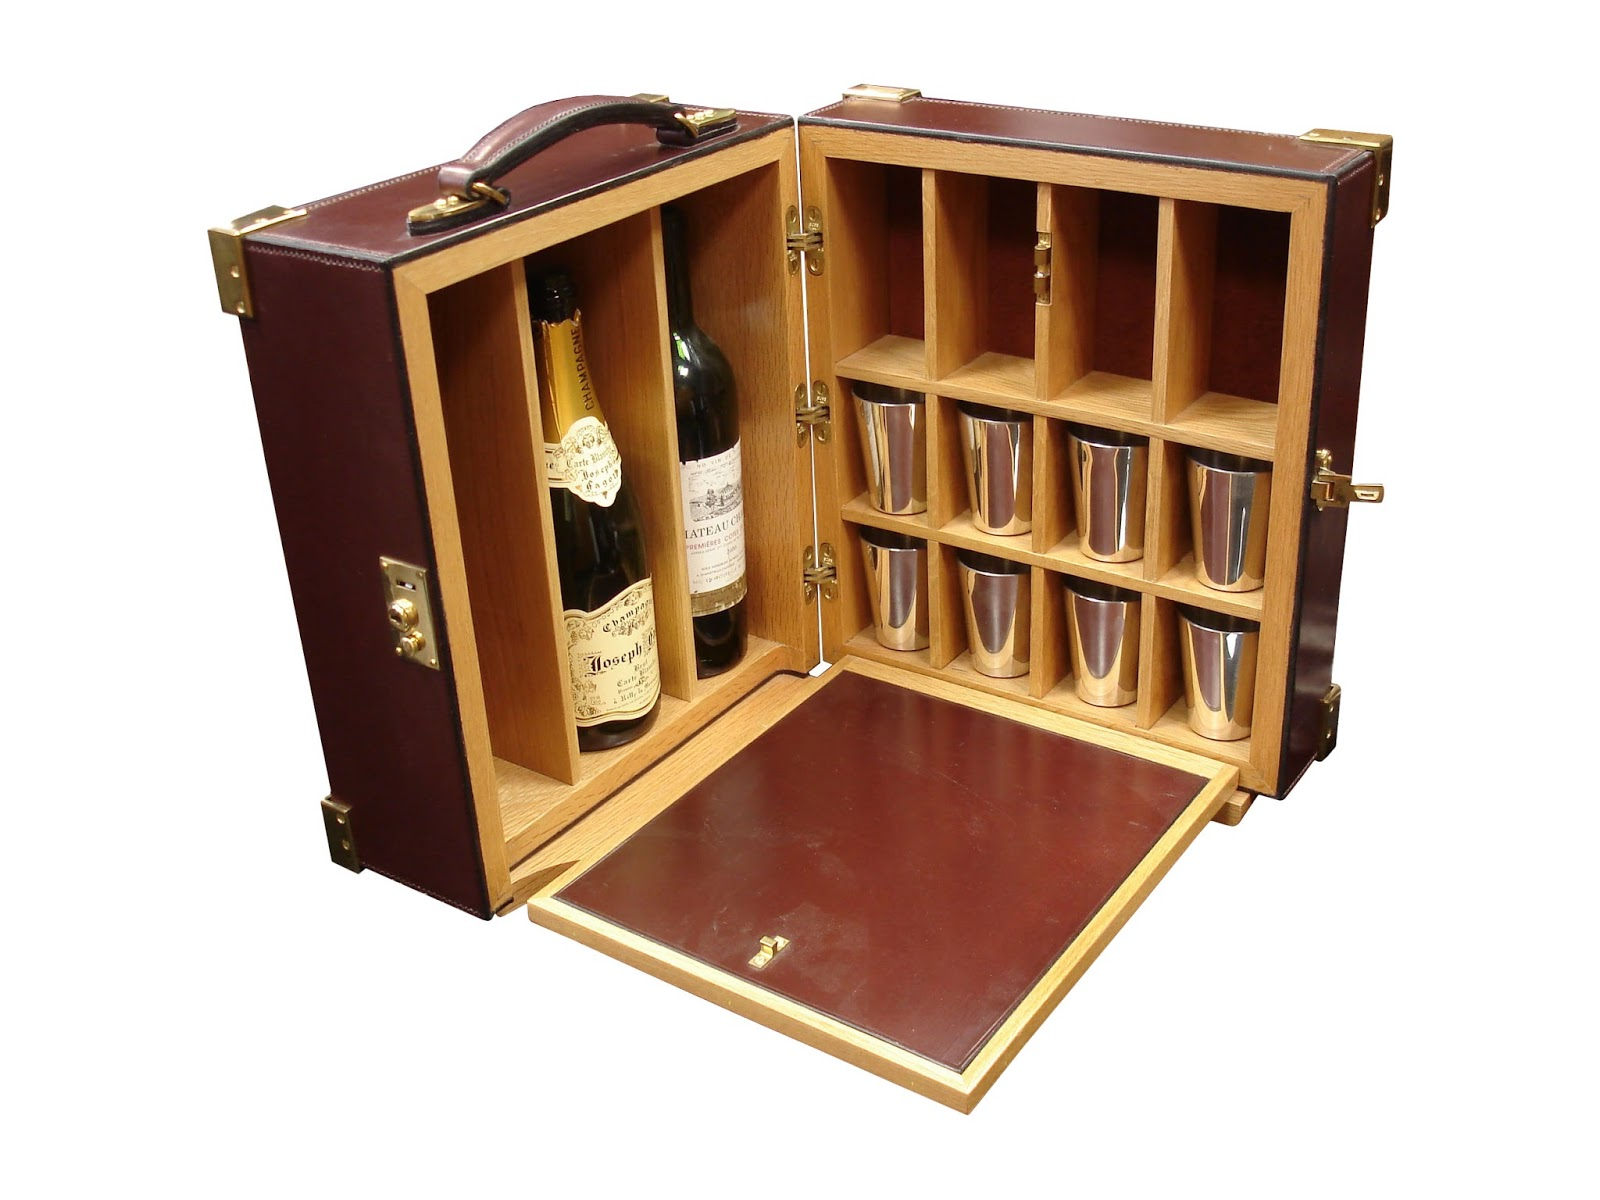 Hardy parsons special products drinks cabinet or tantalus for Built in drinks cabinet